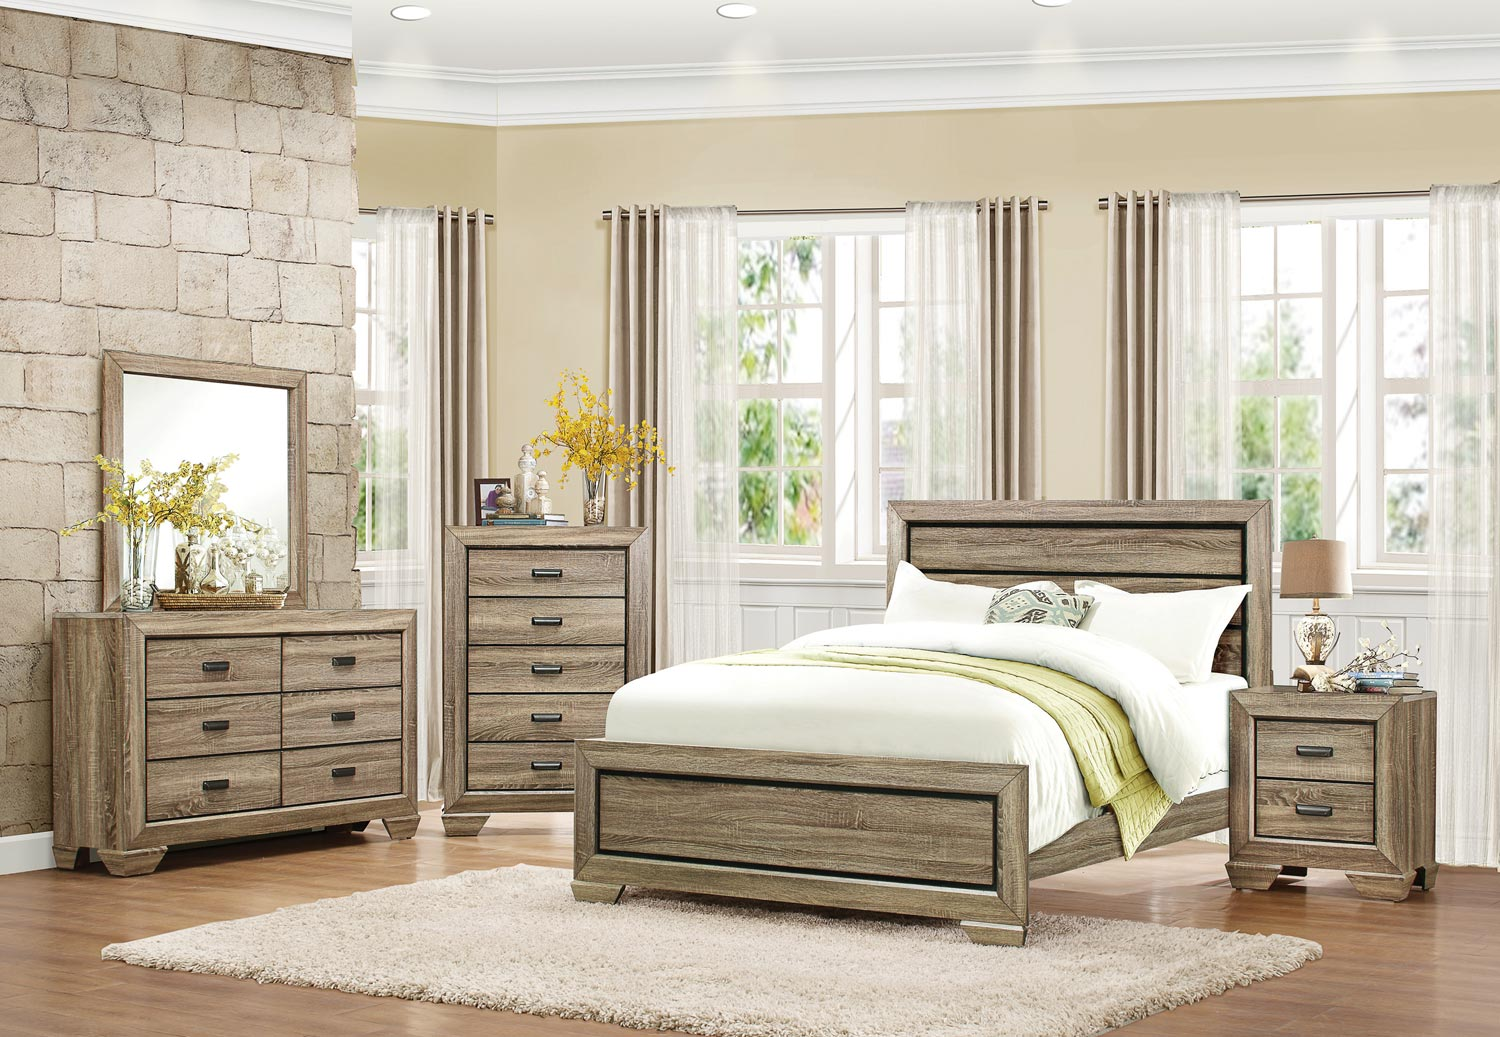 Click here to buy Bainbridge Nightstand Bedroom Furniture in Beechwood.